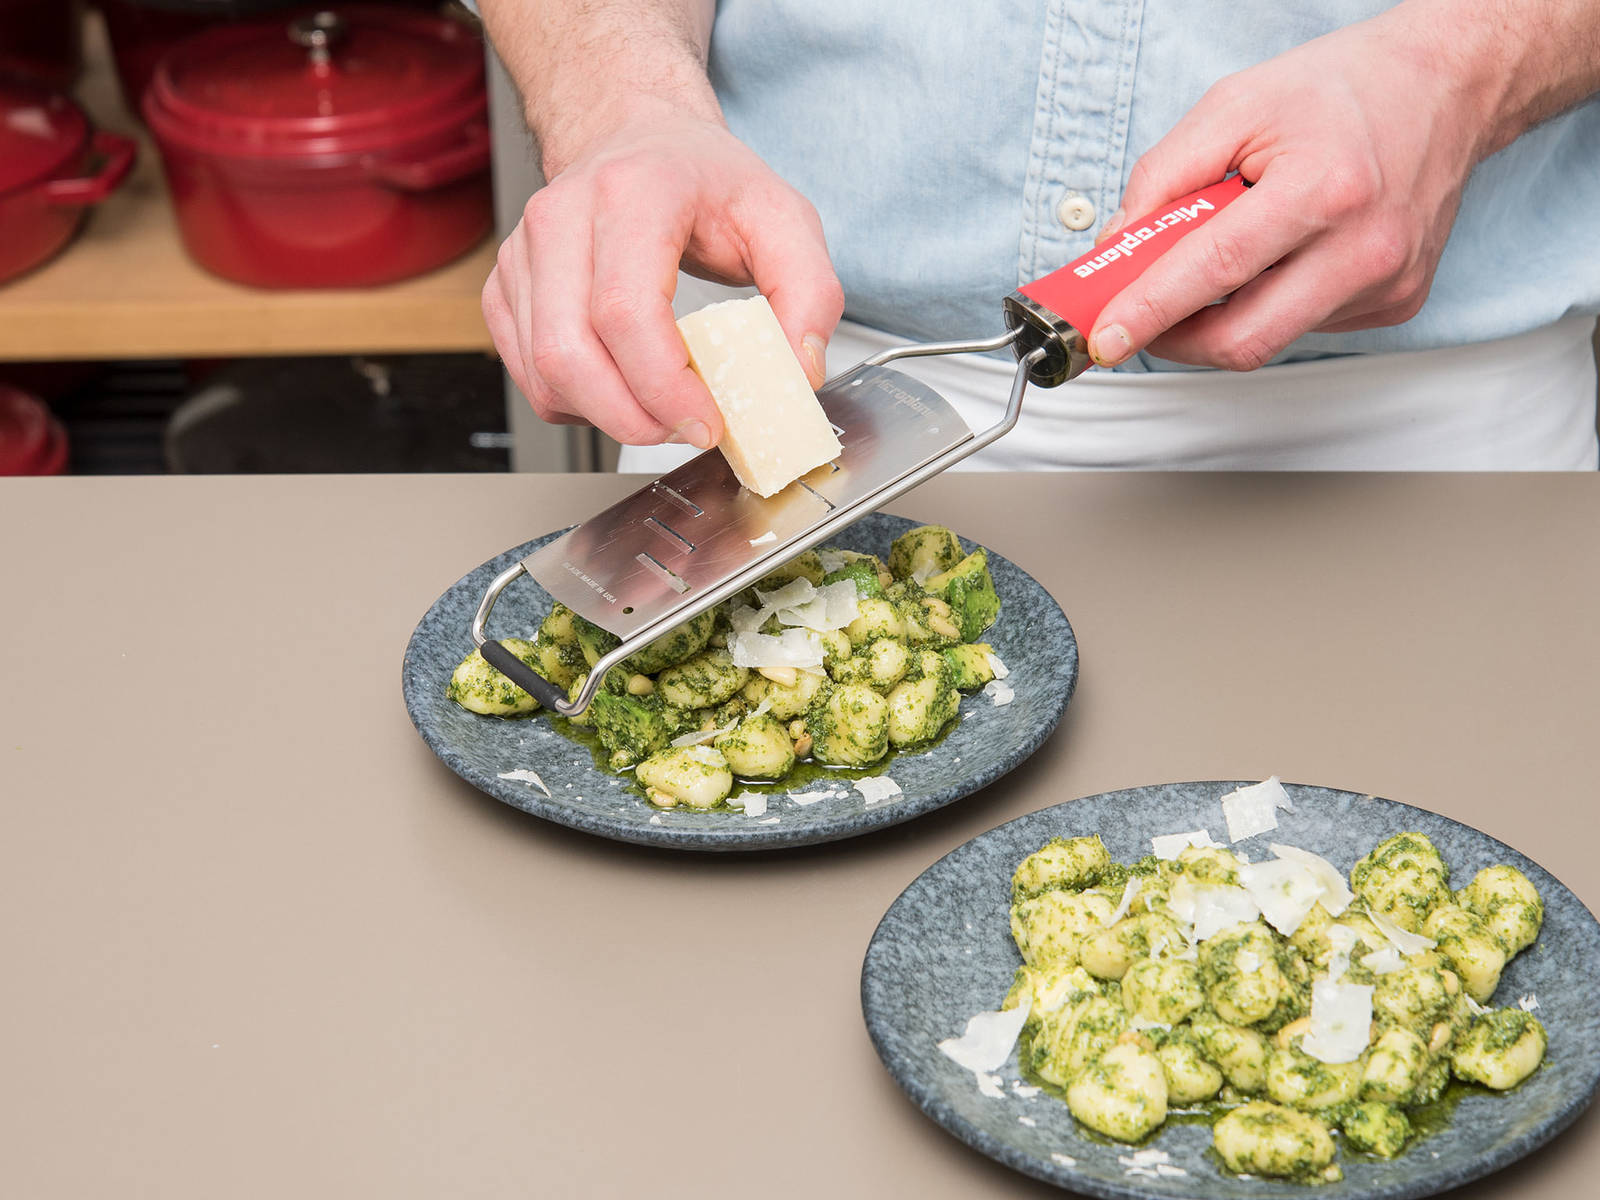 Serve gnocchi with freshly grated parmesan. Season with salt and pepper to taste and enjoy!